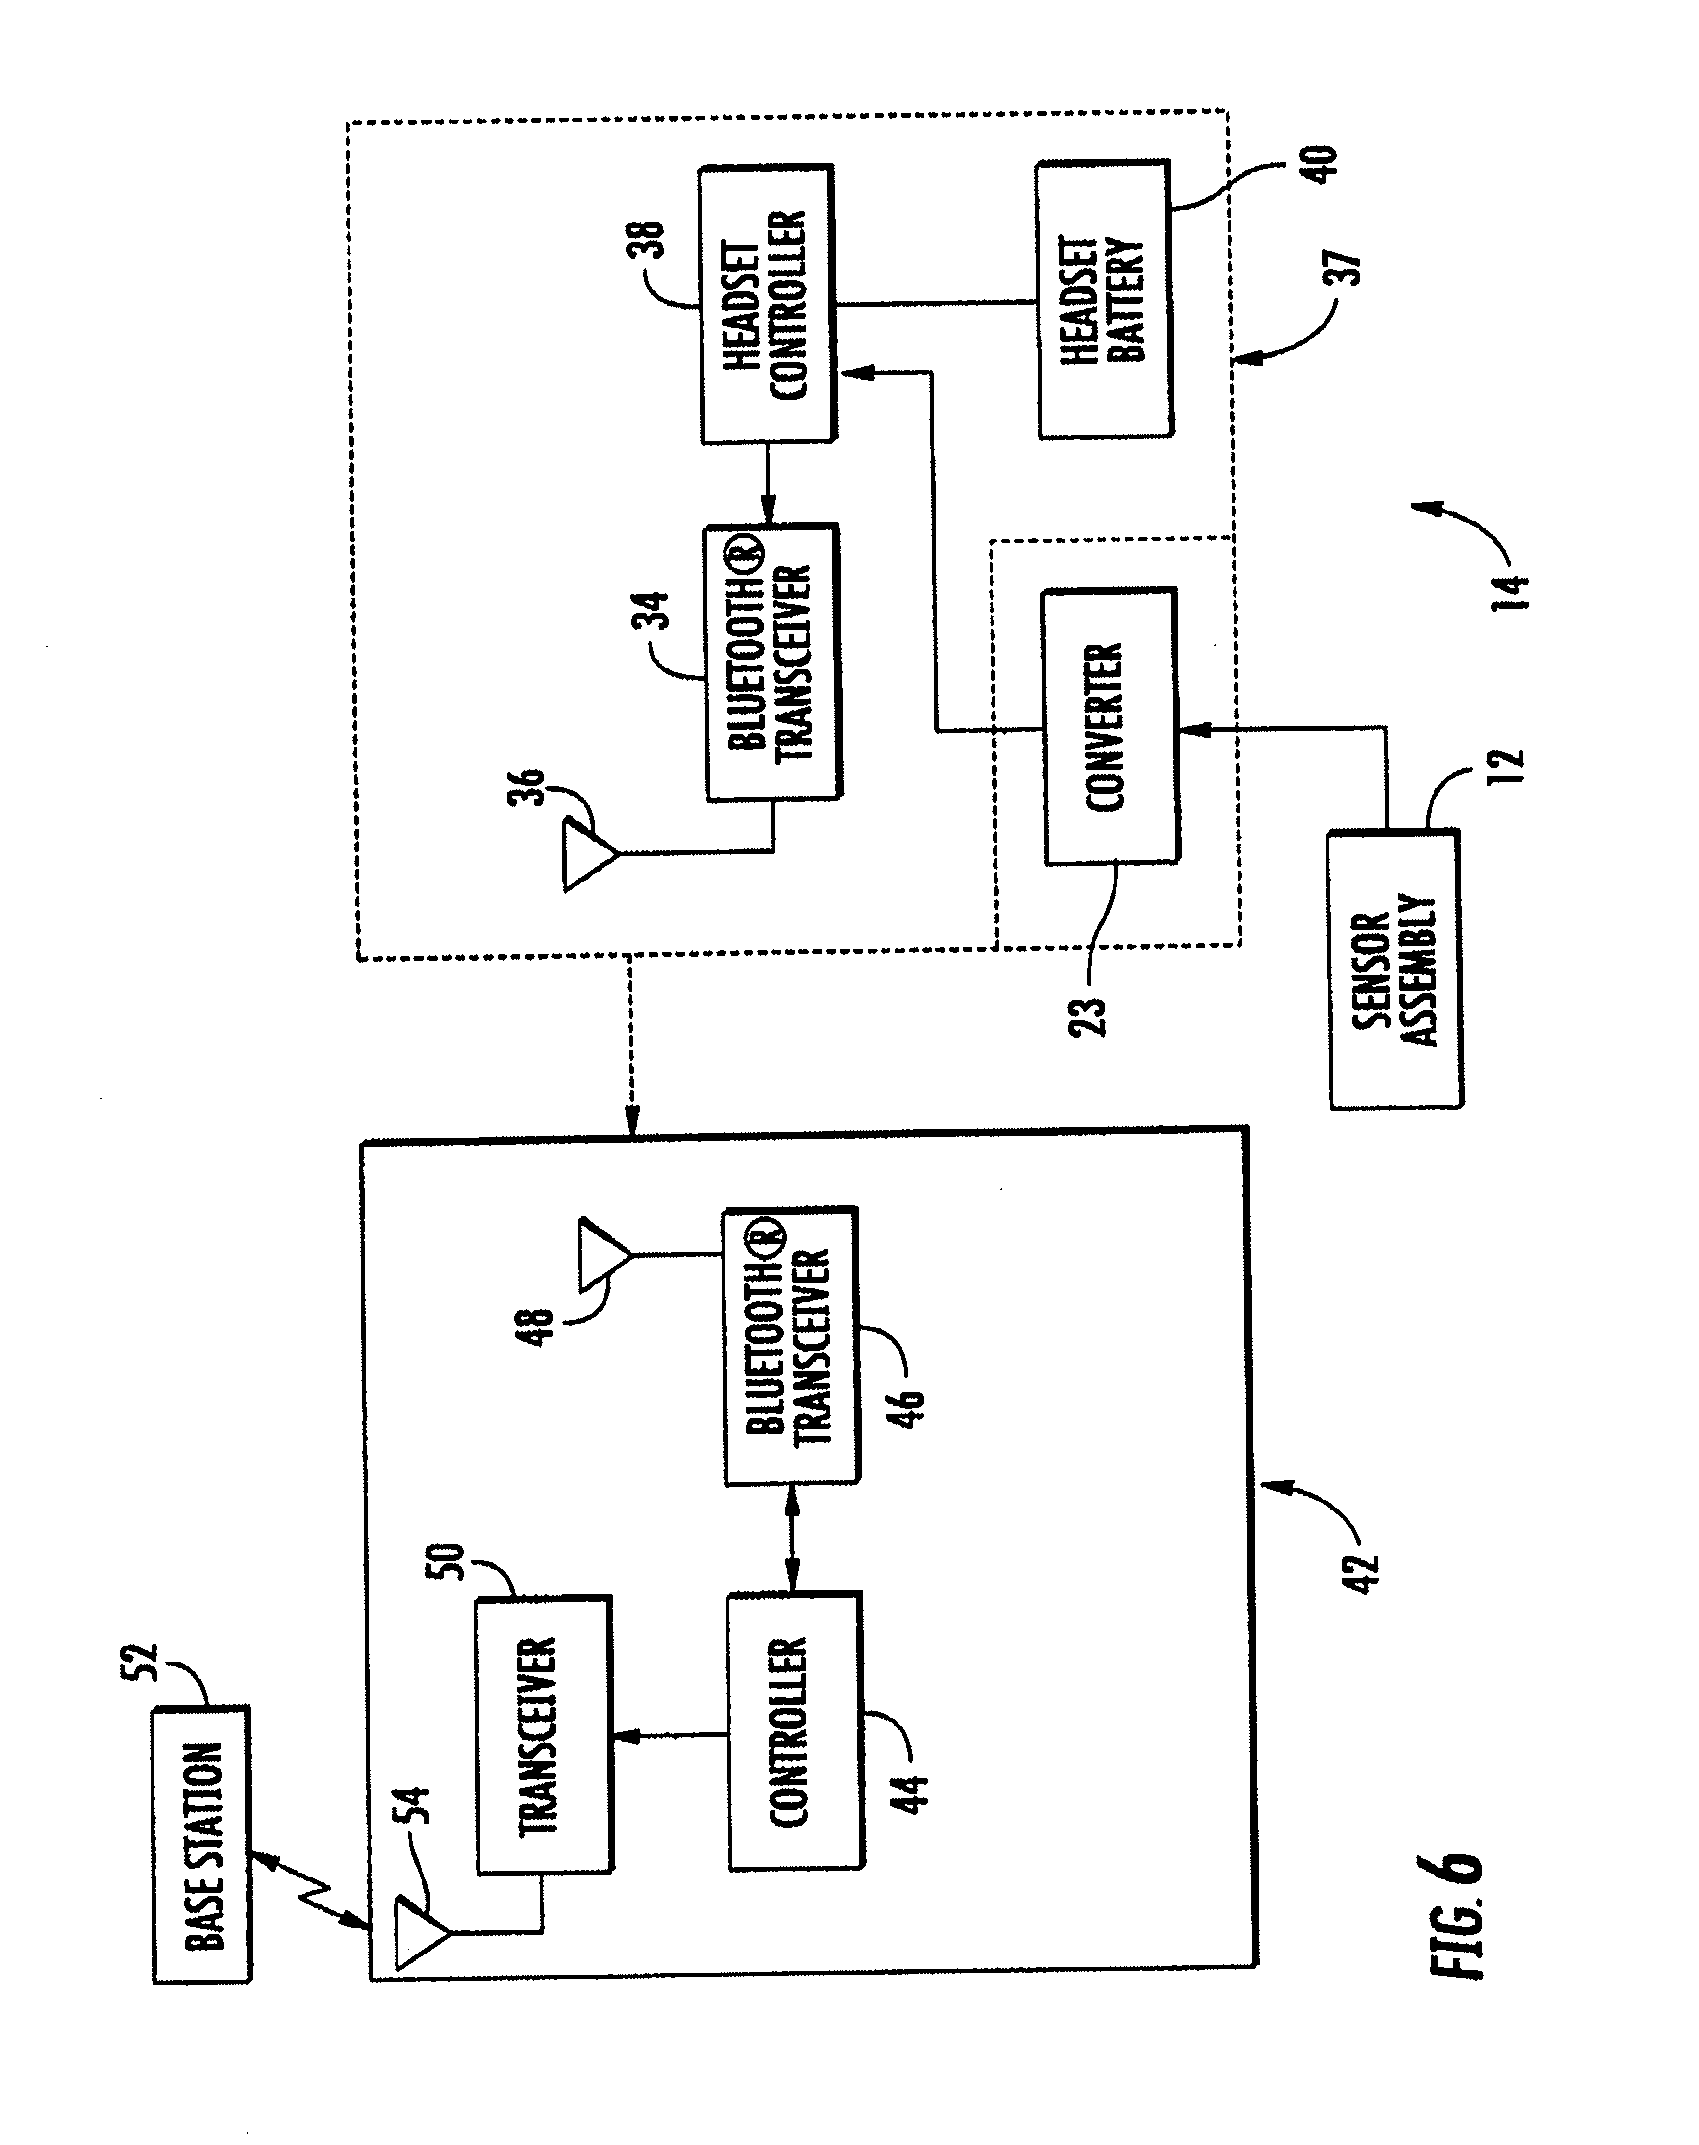 Patent Us20130331663 Heart Monitoring System Usable With A Bluetooth Transceiver Circuit Diagram Drawing